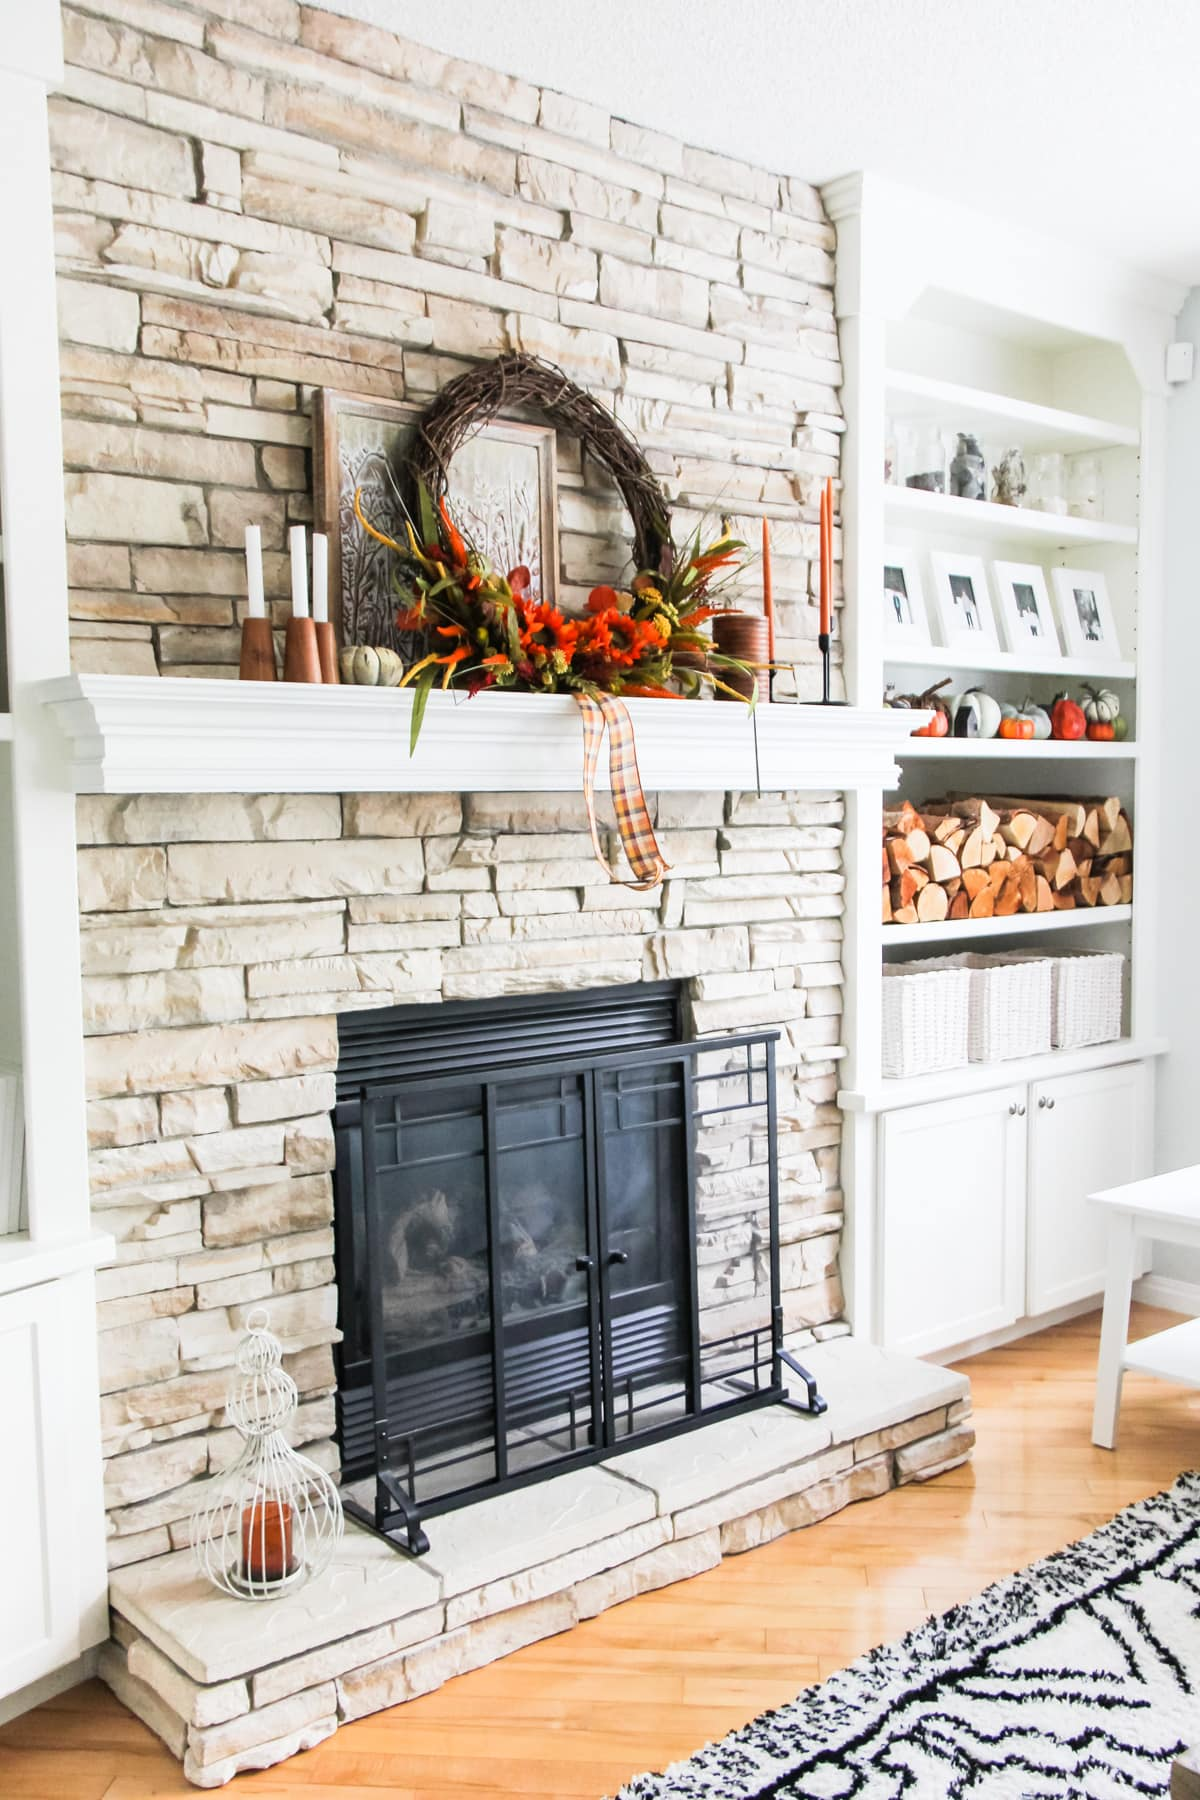 A Simple Fall Mantel on a stone fireplace that is decorated with a large grapevine wreath with fall flowers, candles, and small pumpkins